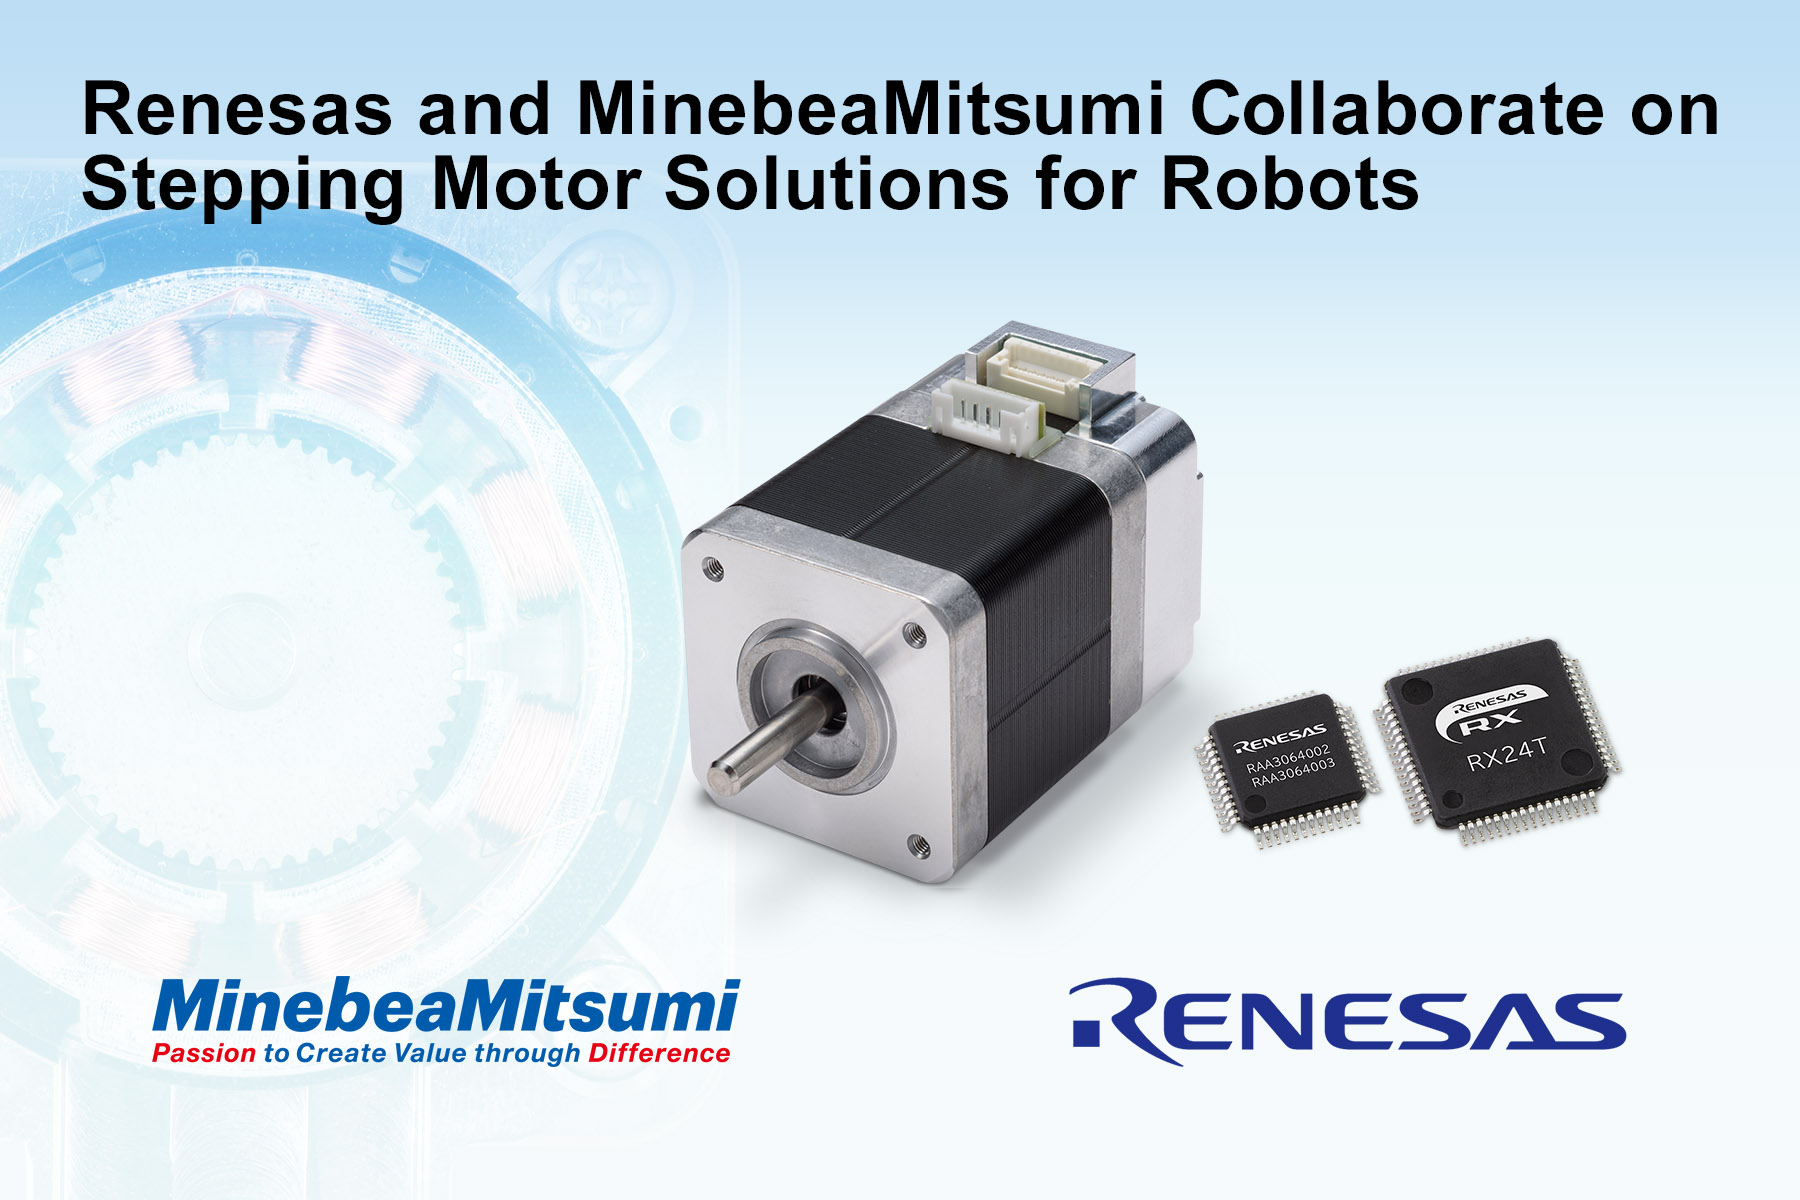 Renesas and Minebea Mitsumi Collaborate on Stepping Motors